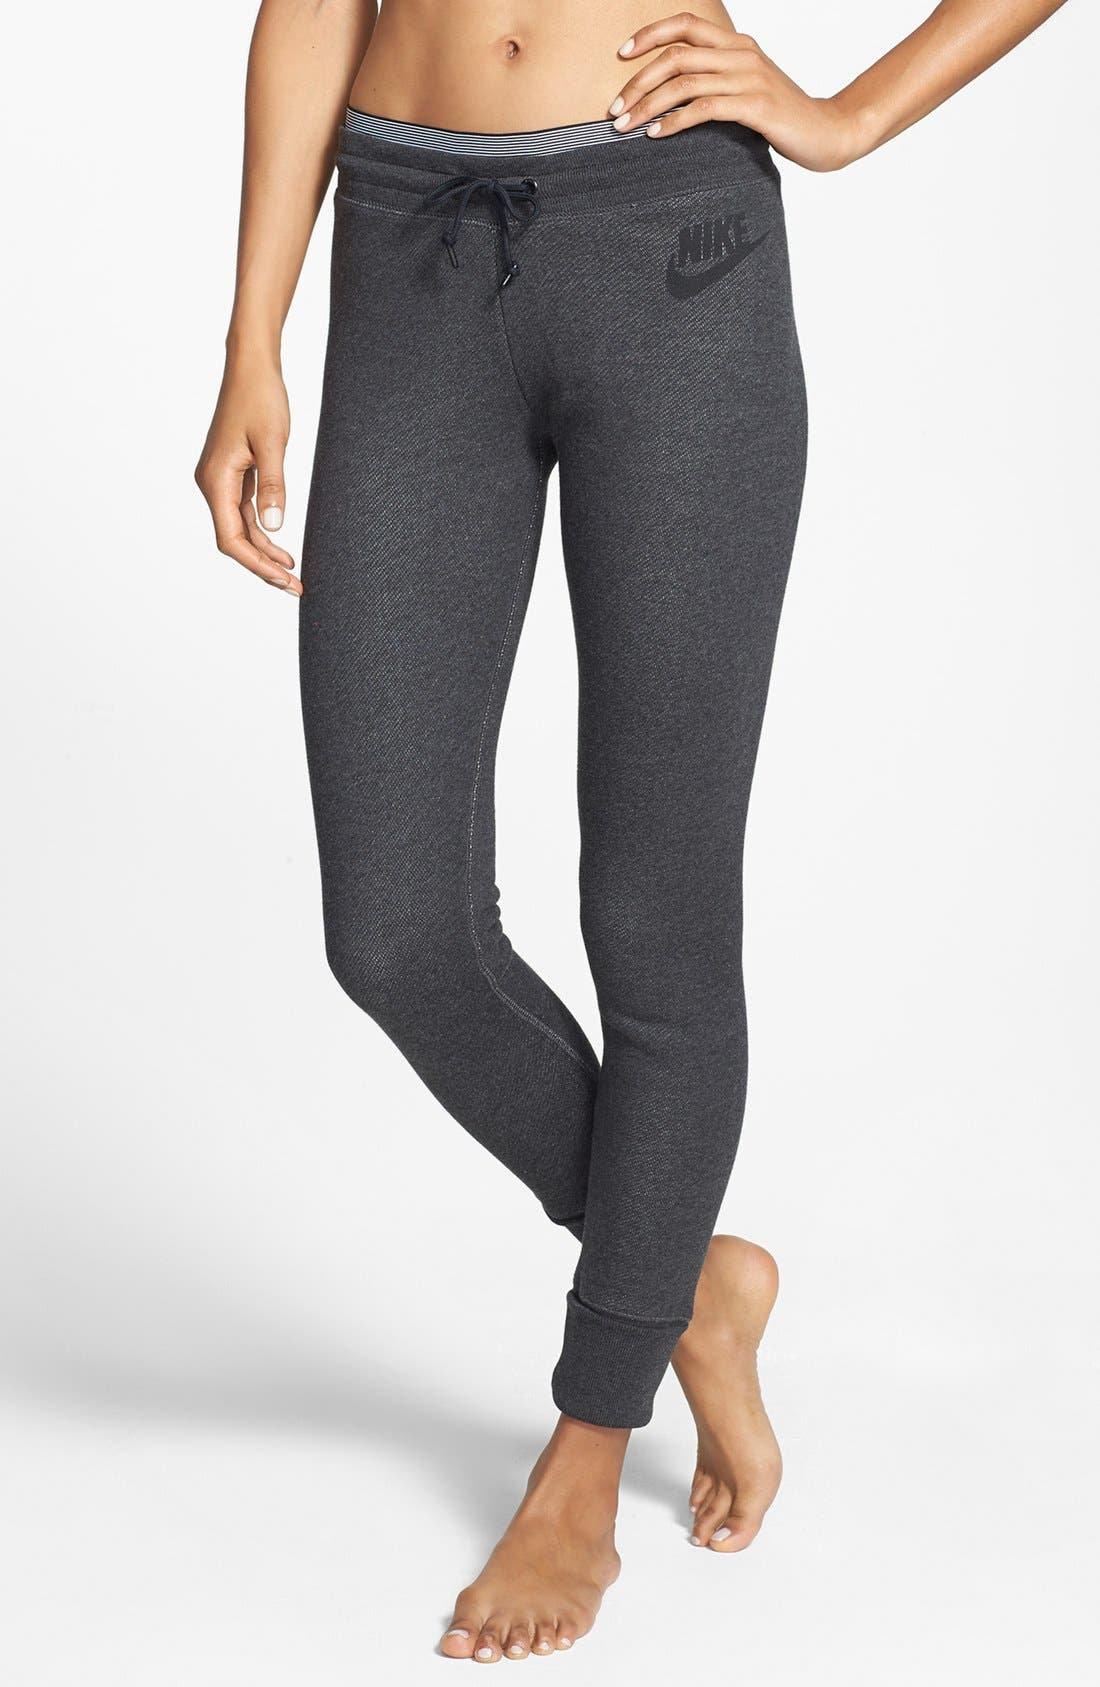 Alternate Image 1 Selected - Nike 'District 72' Leggings